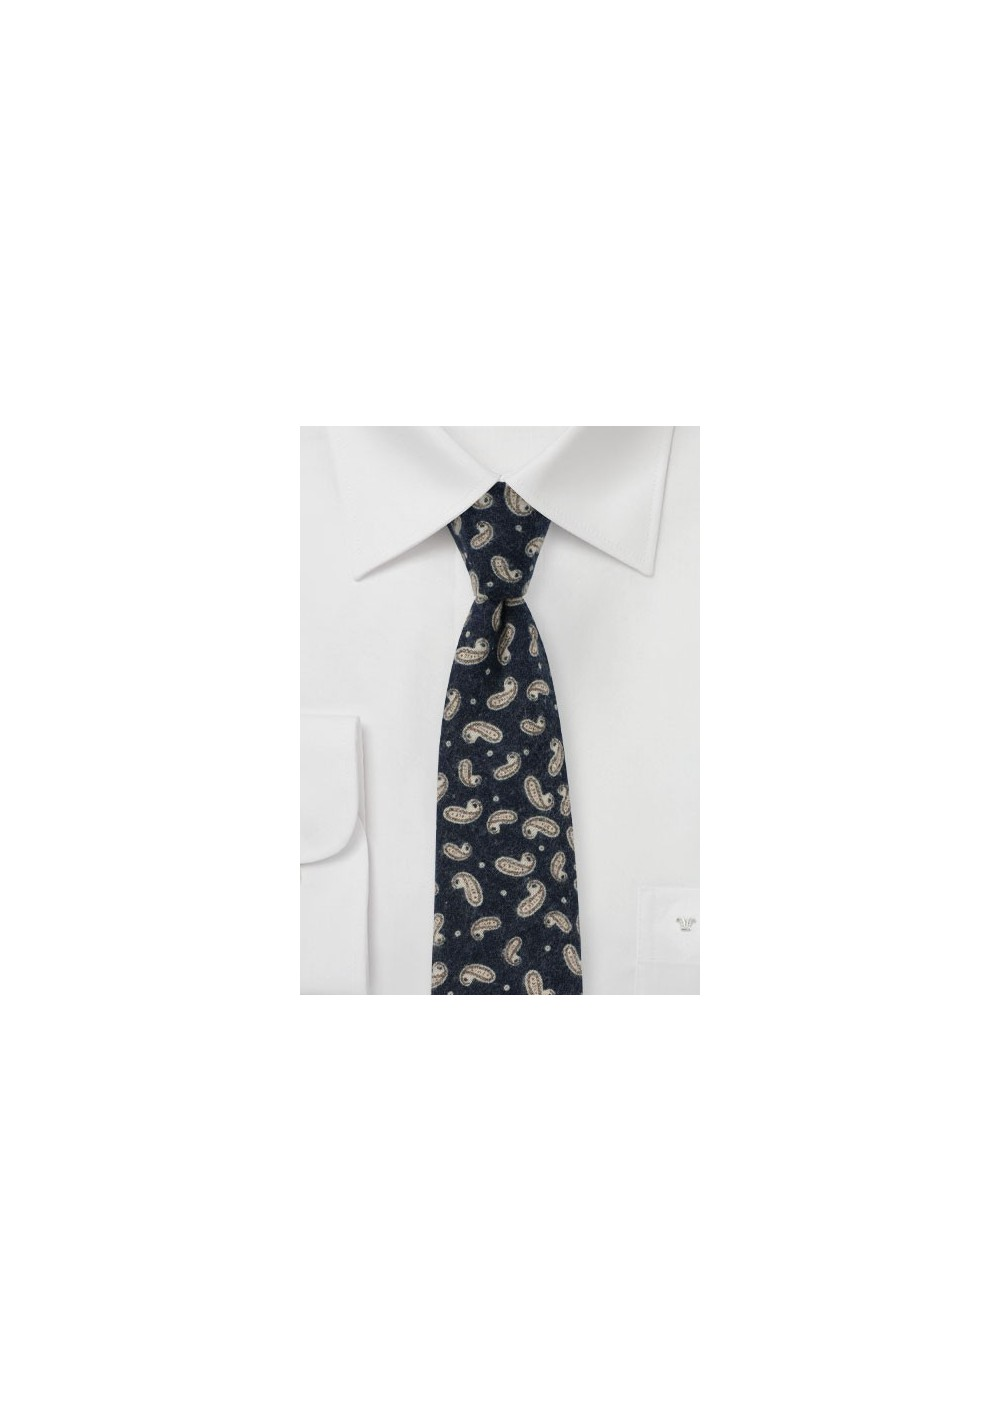 Flannel Cotton Print Tie in Navy with Paisley Design